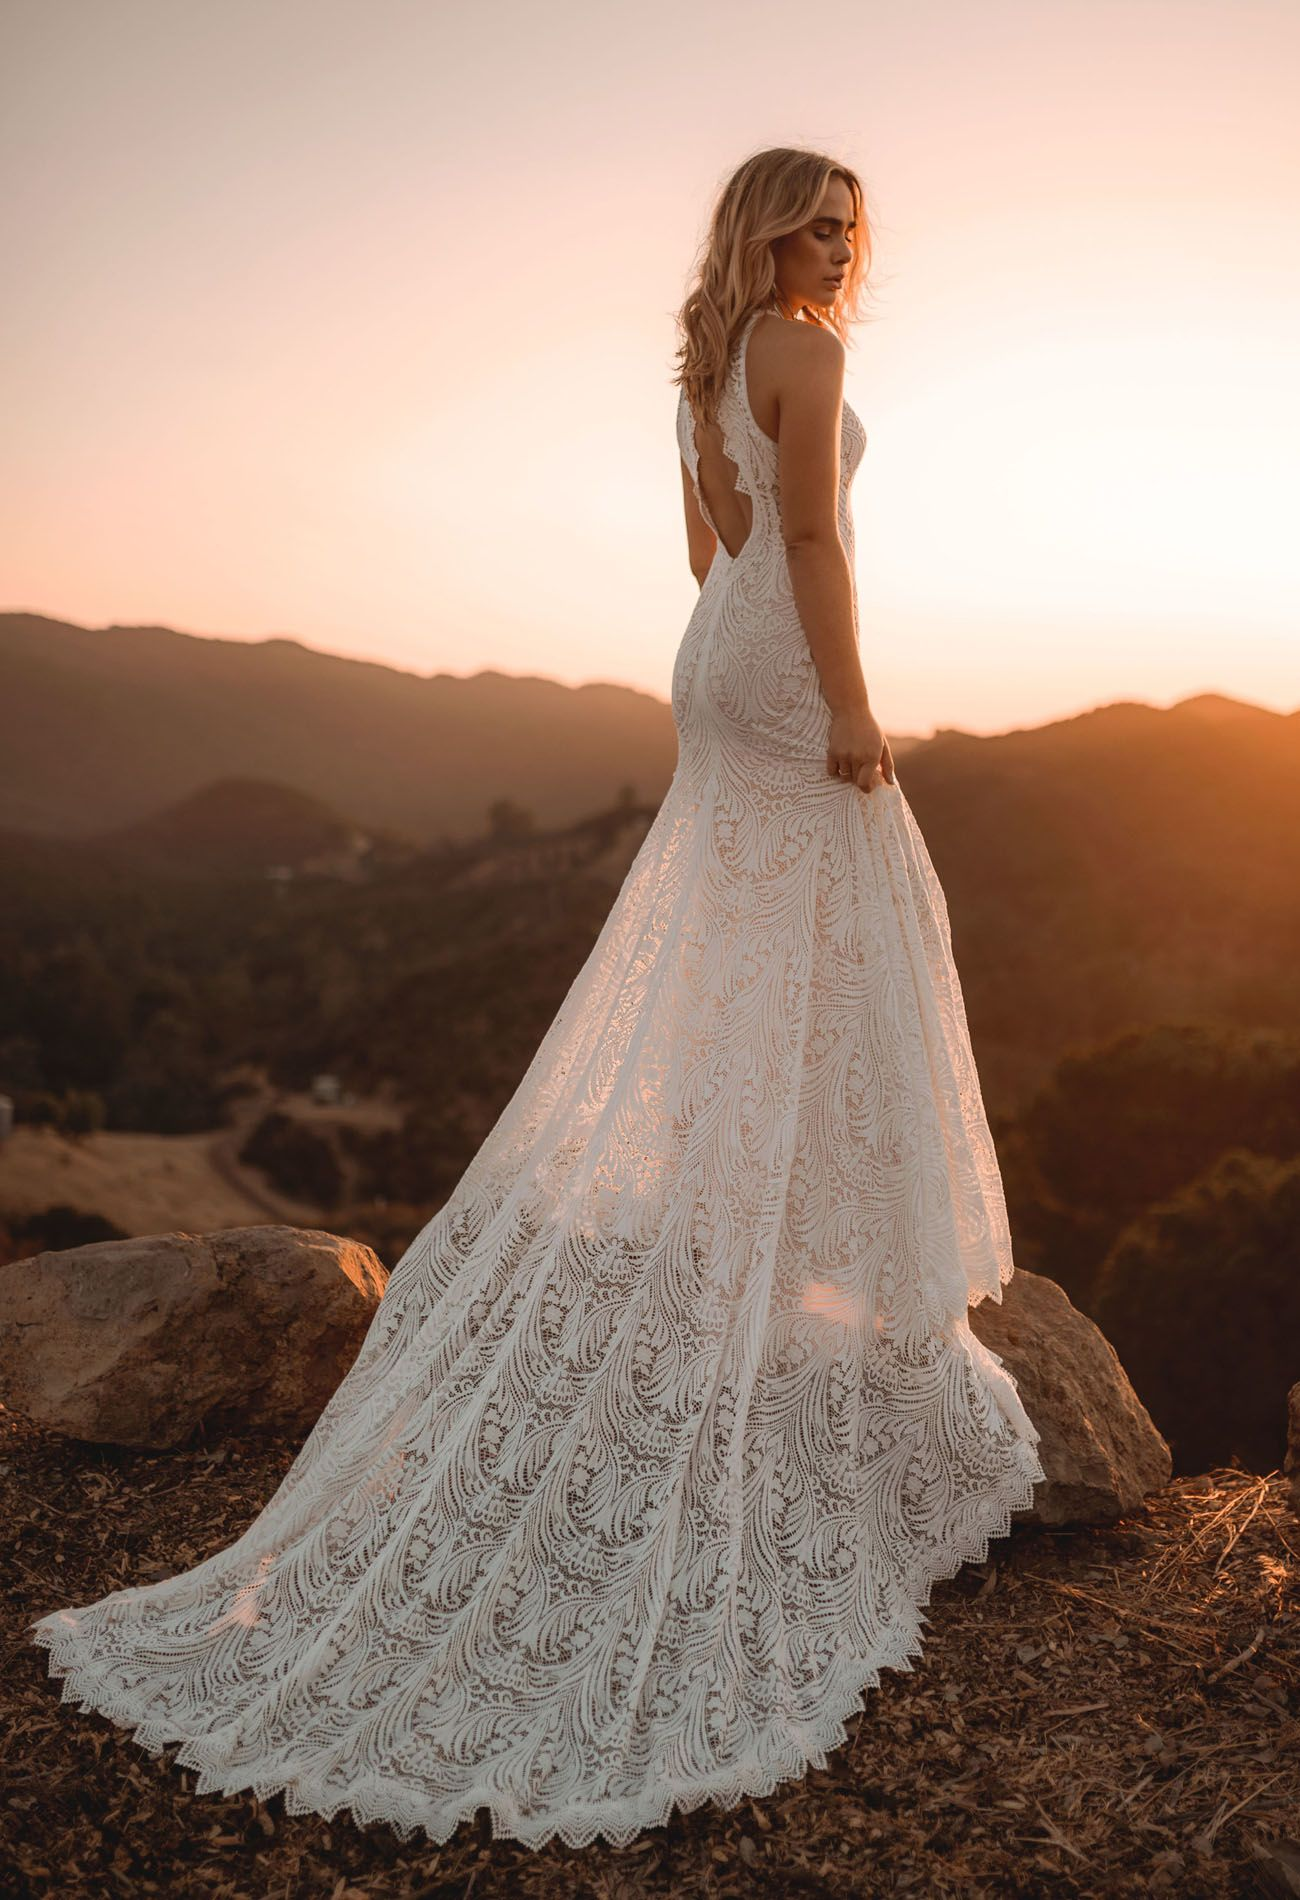 Introducing the lovers society x green wedding shoes wedding dress